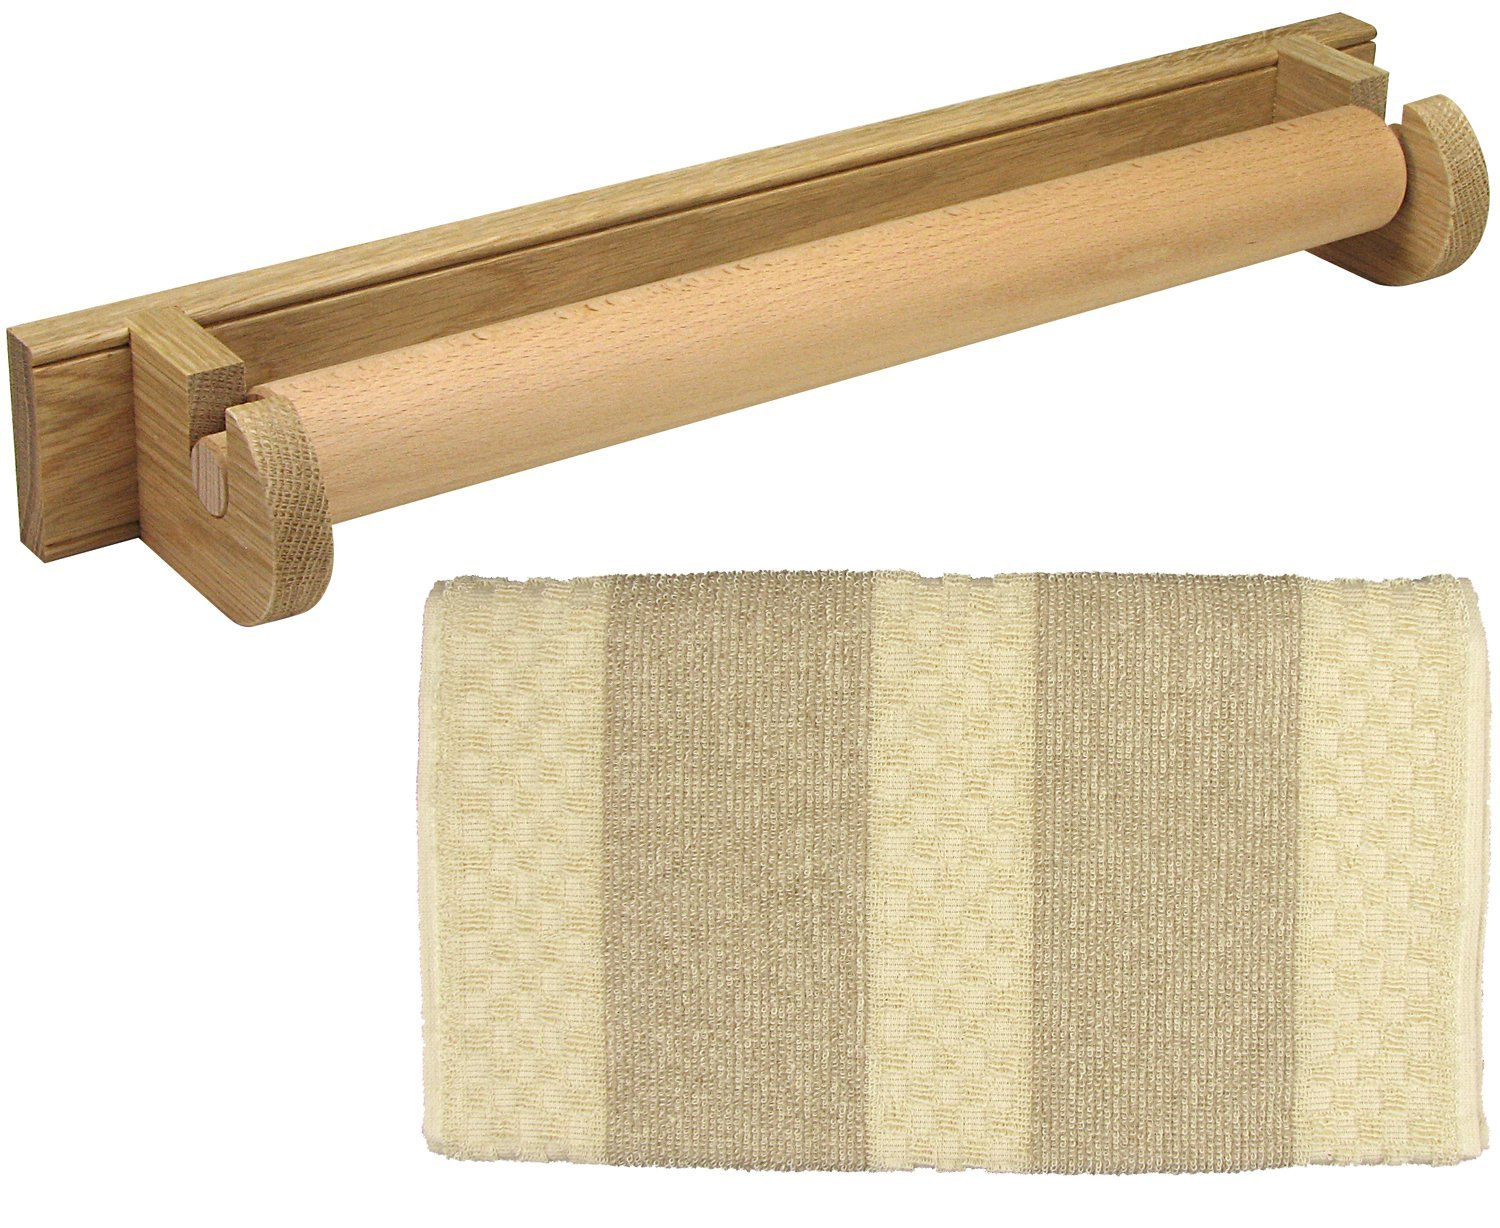 Oak Roller Towel Holder With 100% Cotton Traditional Terry Roller Towel (Oak Holder + Natural Stripe Towel)